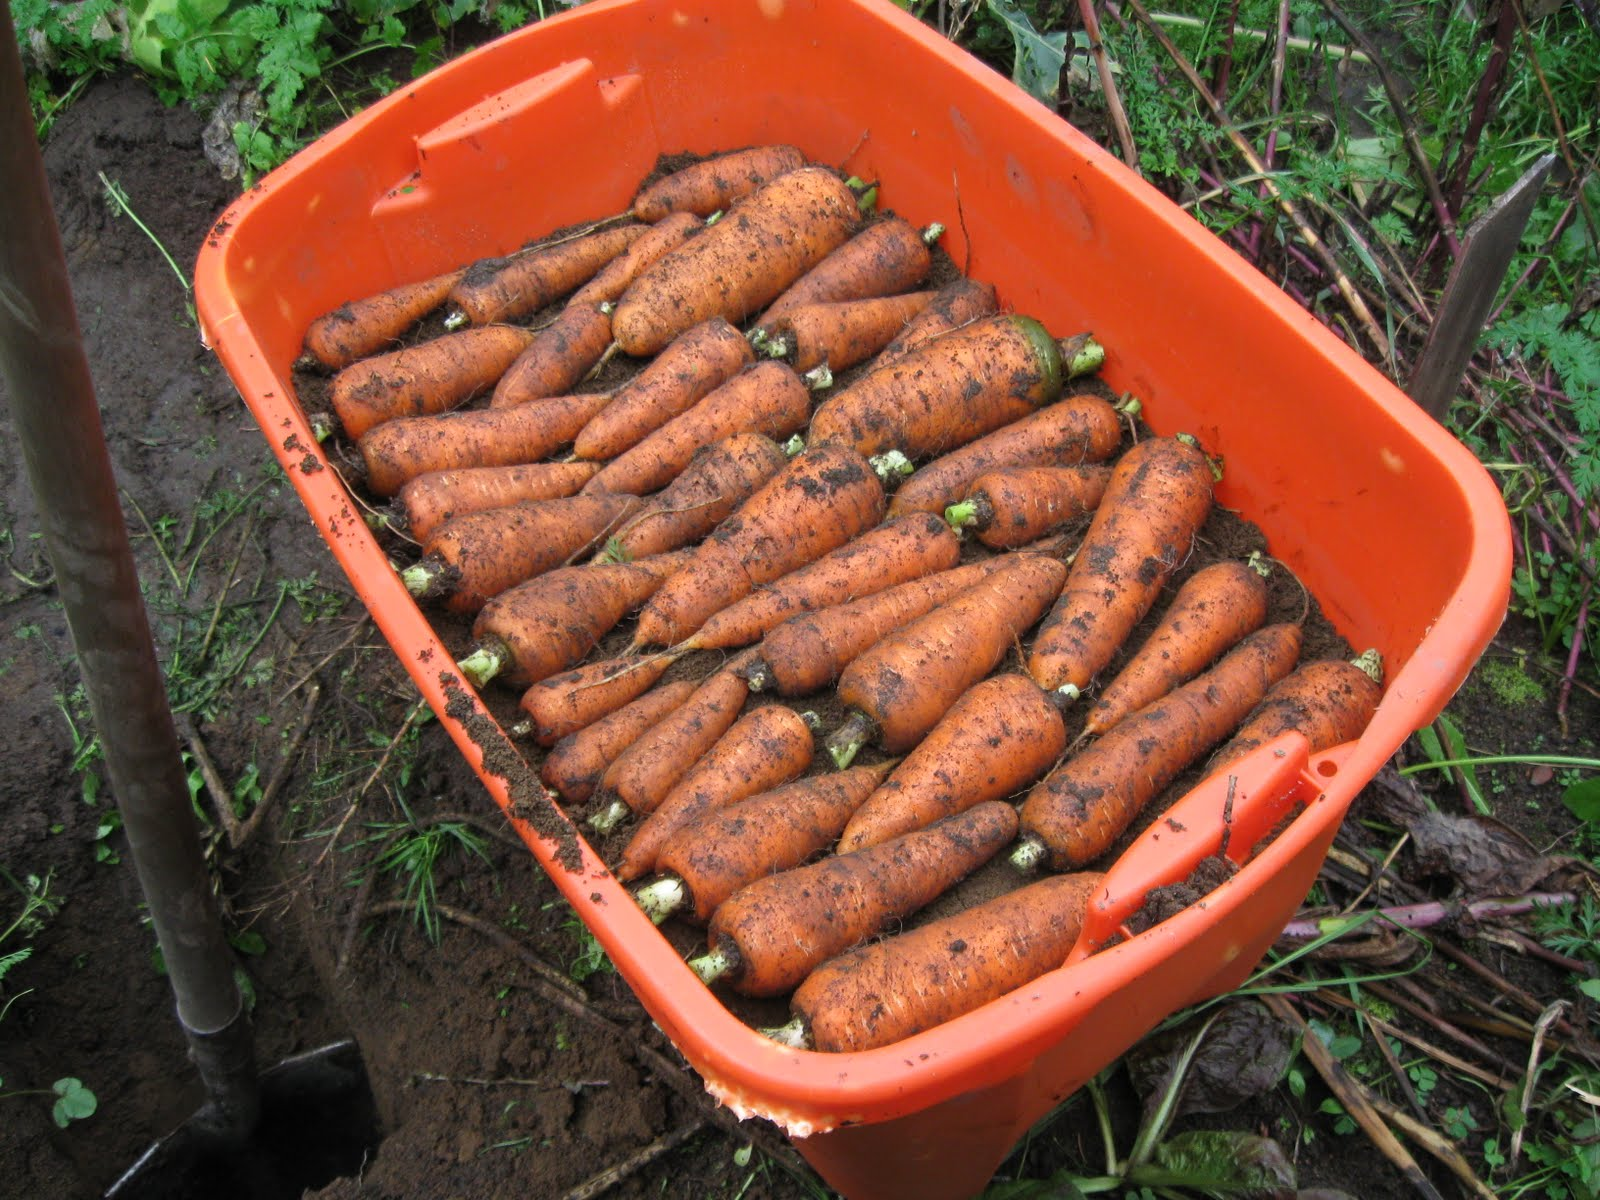 Our Subsistence Pattern Harvesting Beets And Carrots